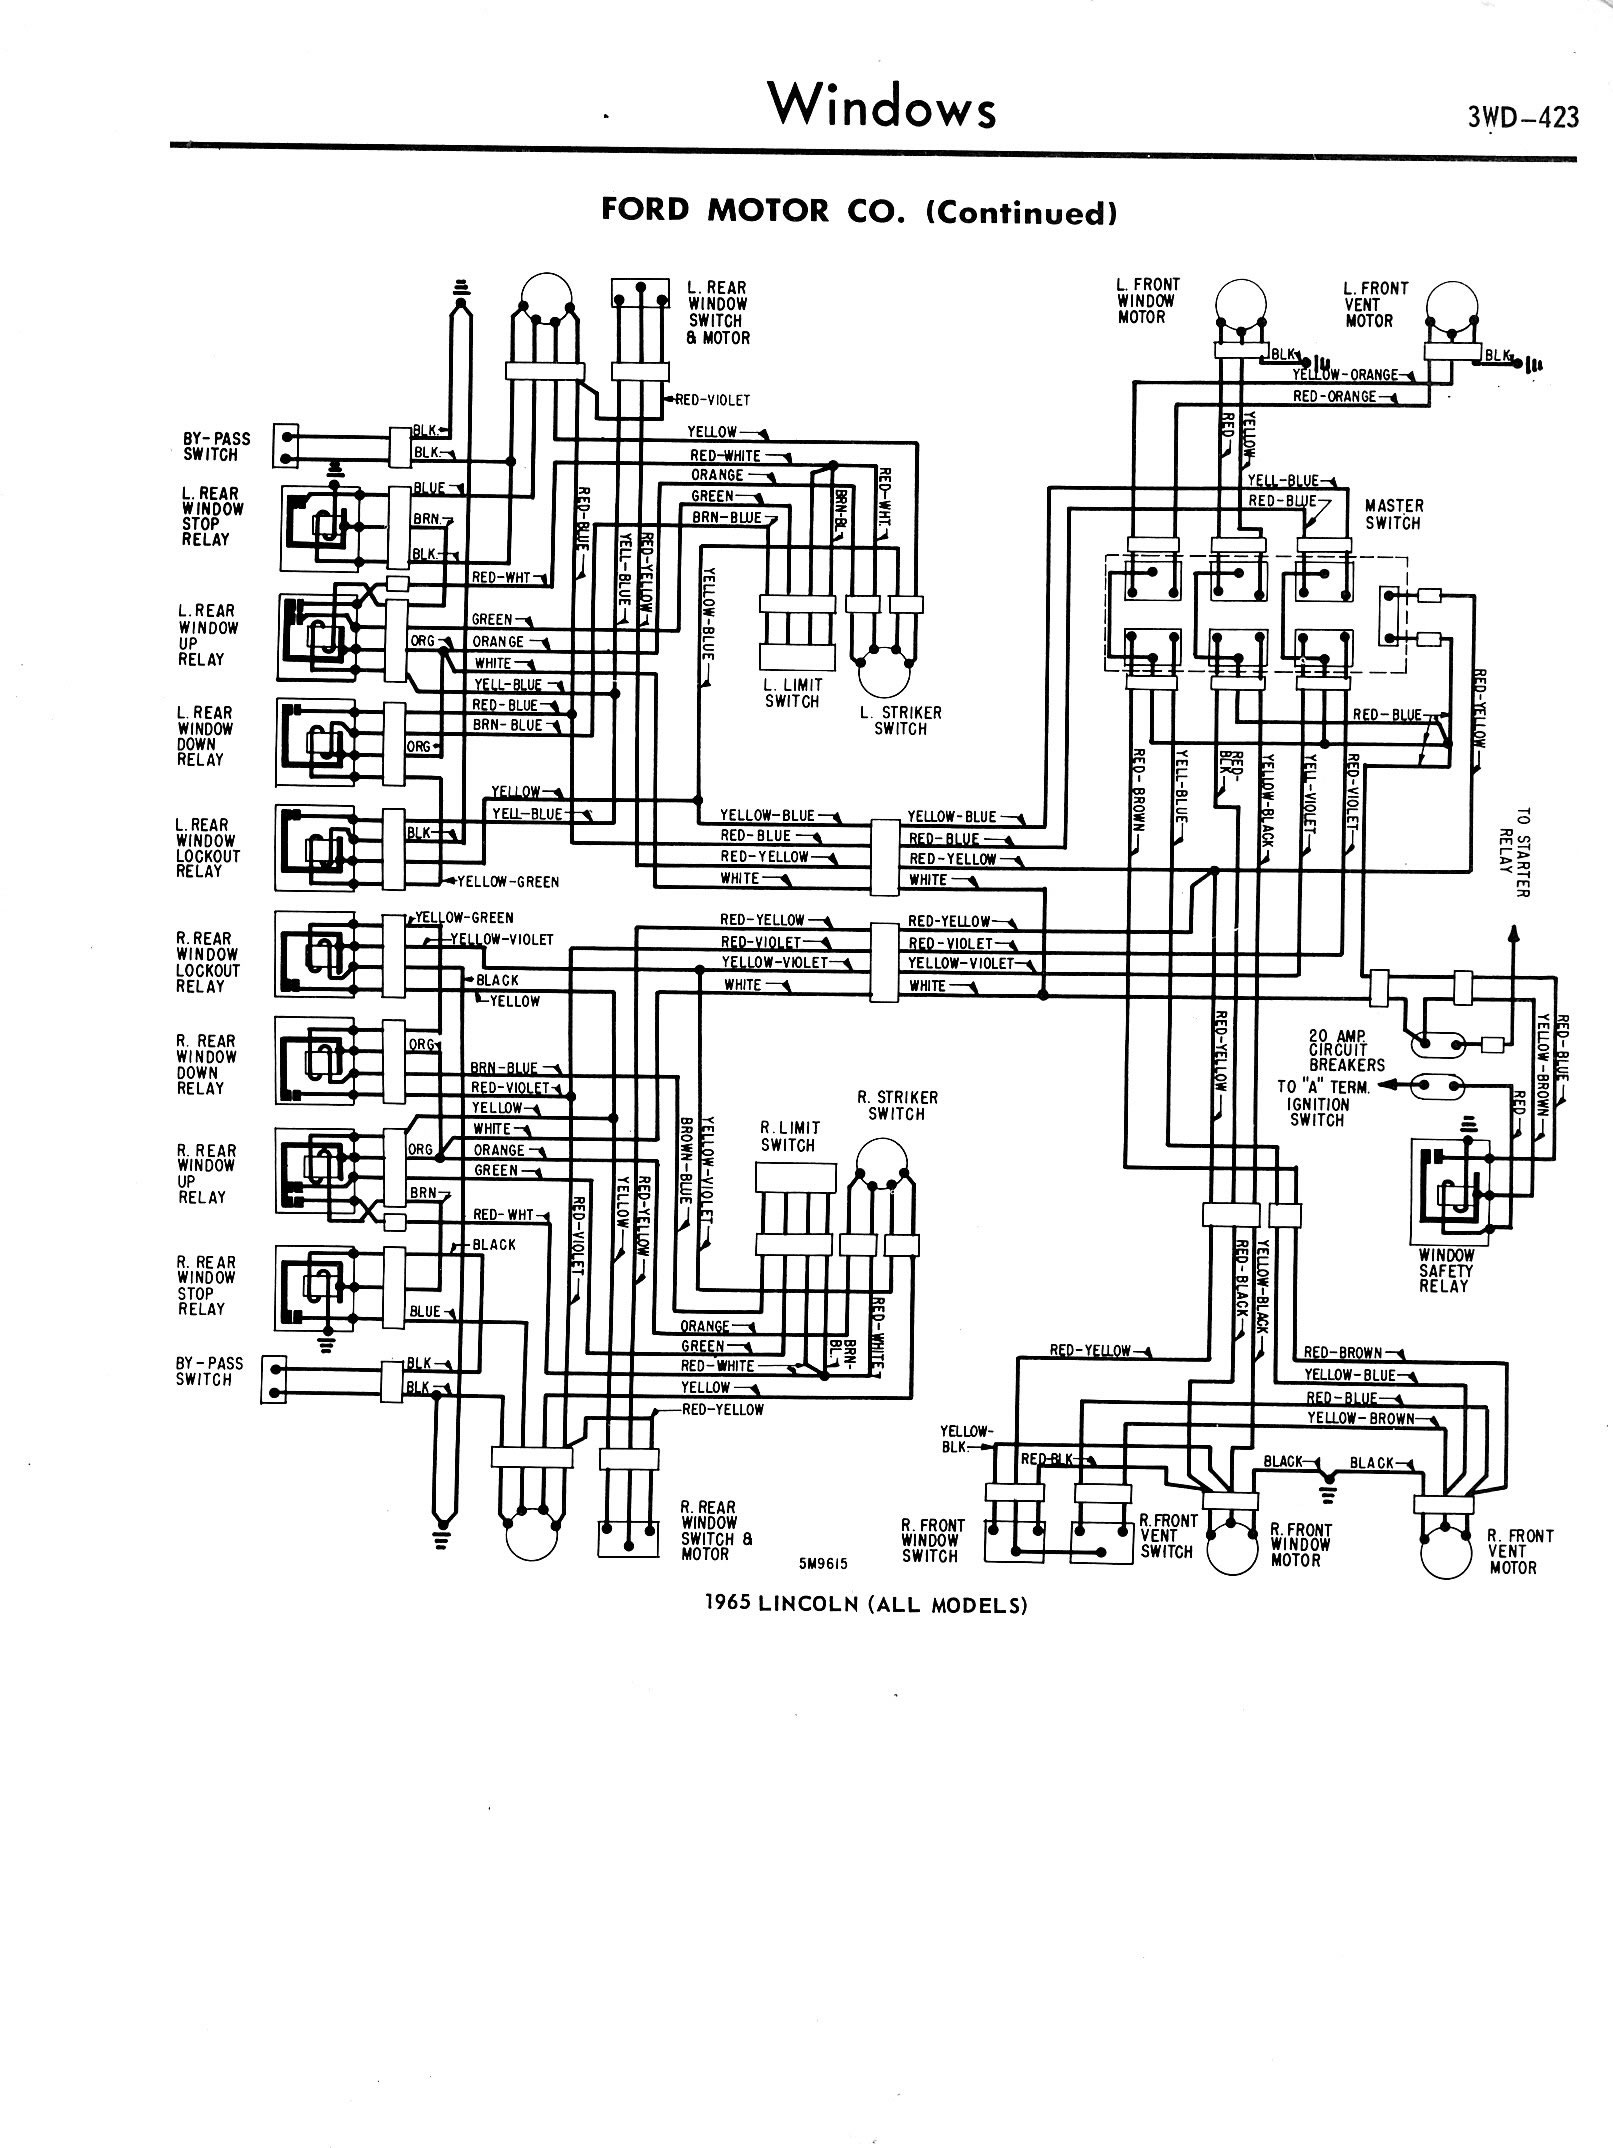 1957 1965 Accessory Wiring Diagrams 3wd 423 Ignition Switch Diagram